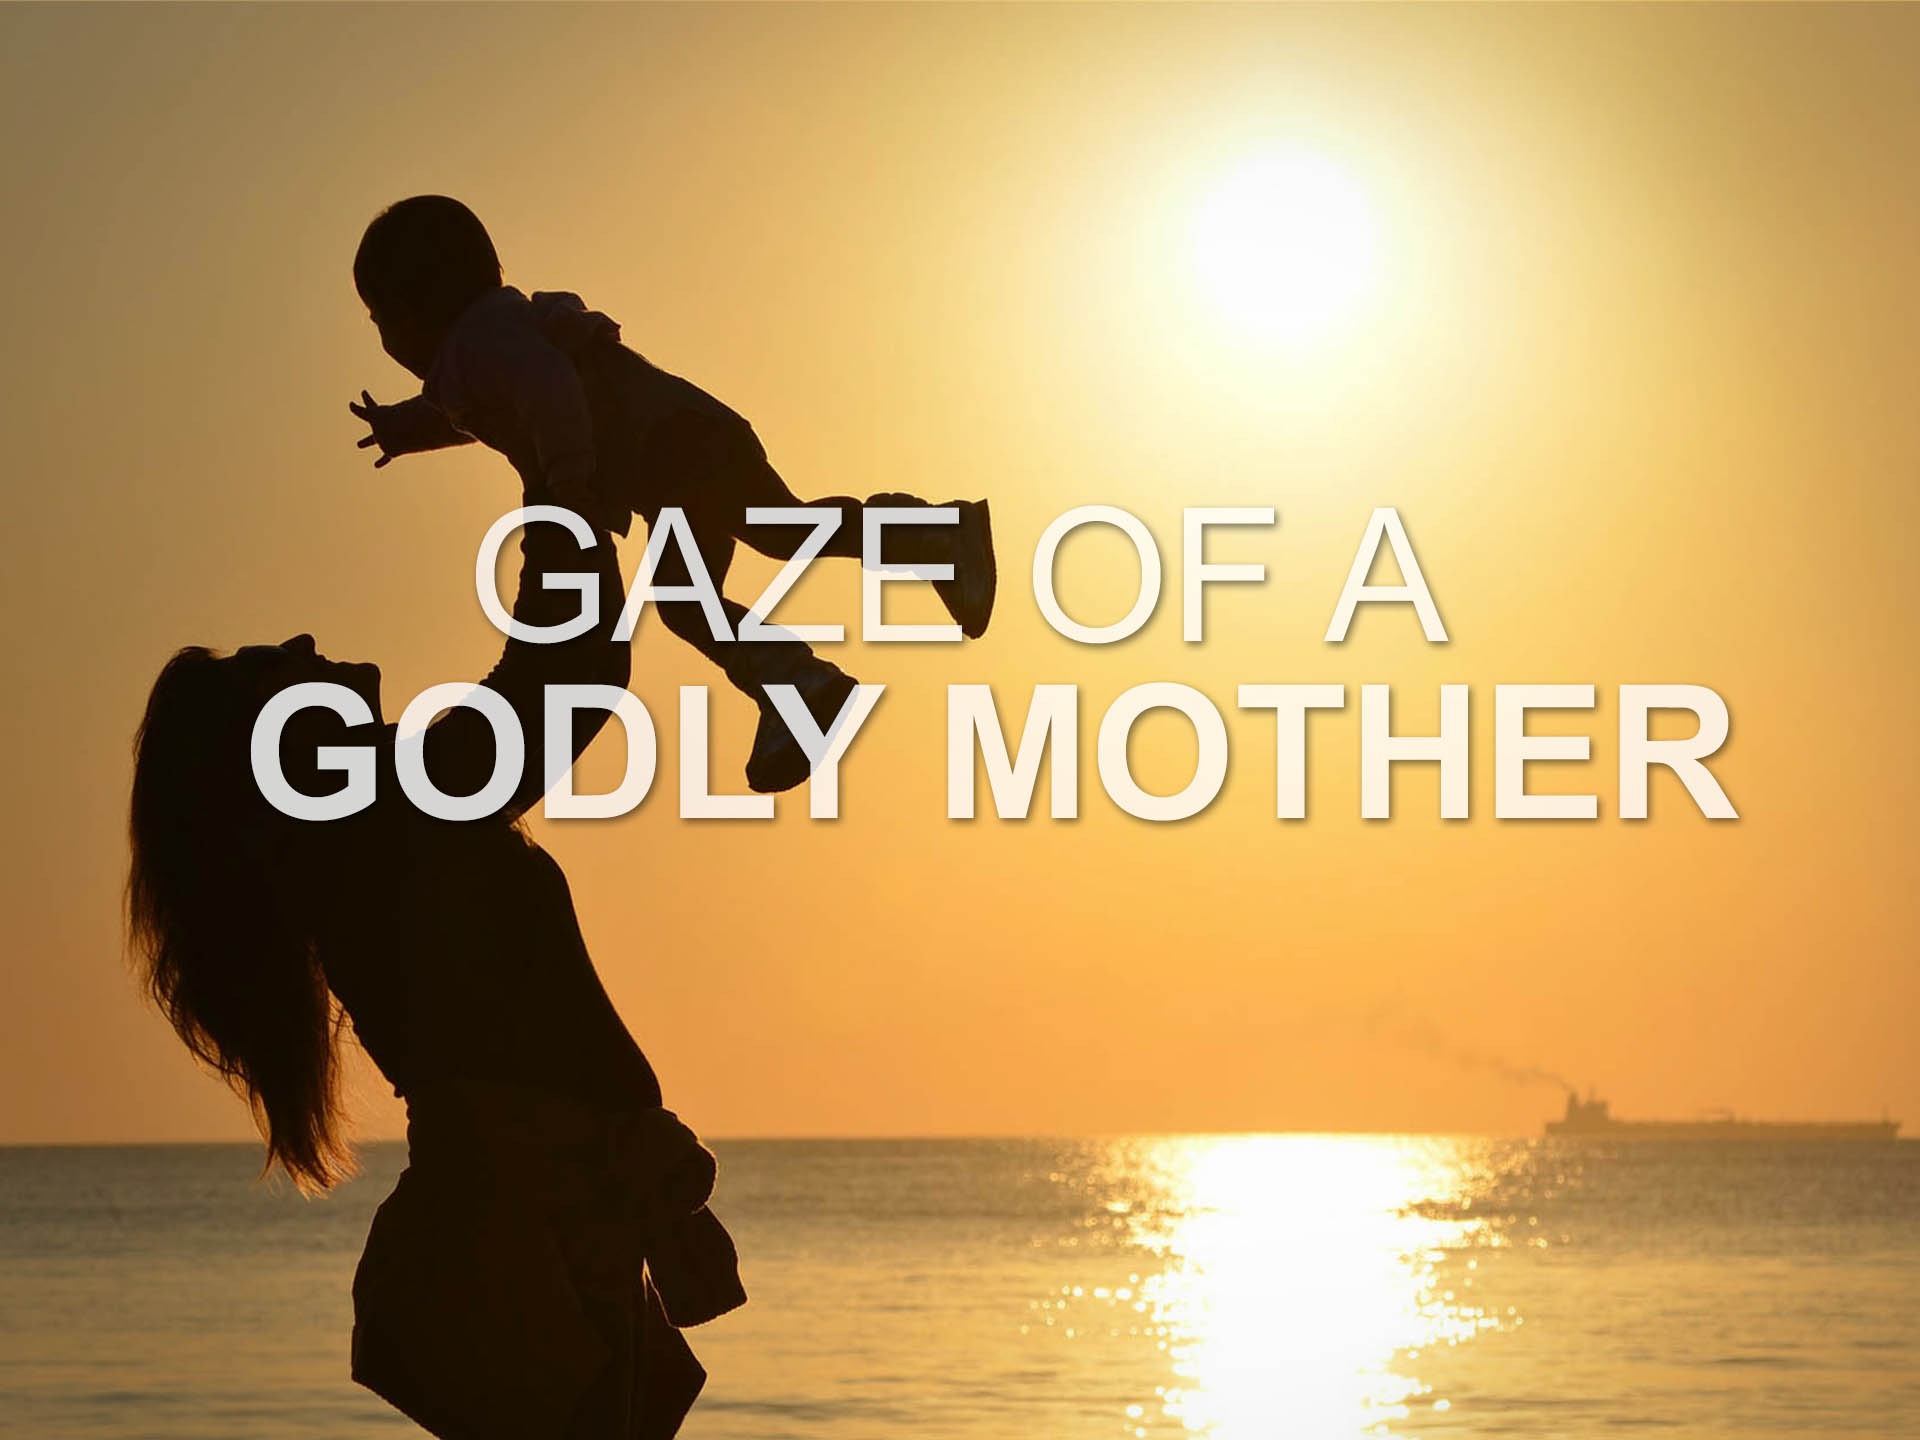 Gaze of a Godly Mother